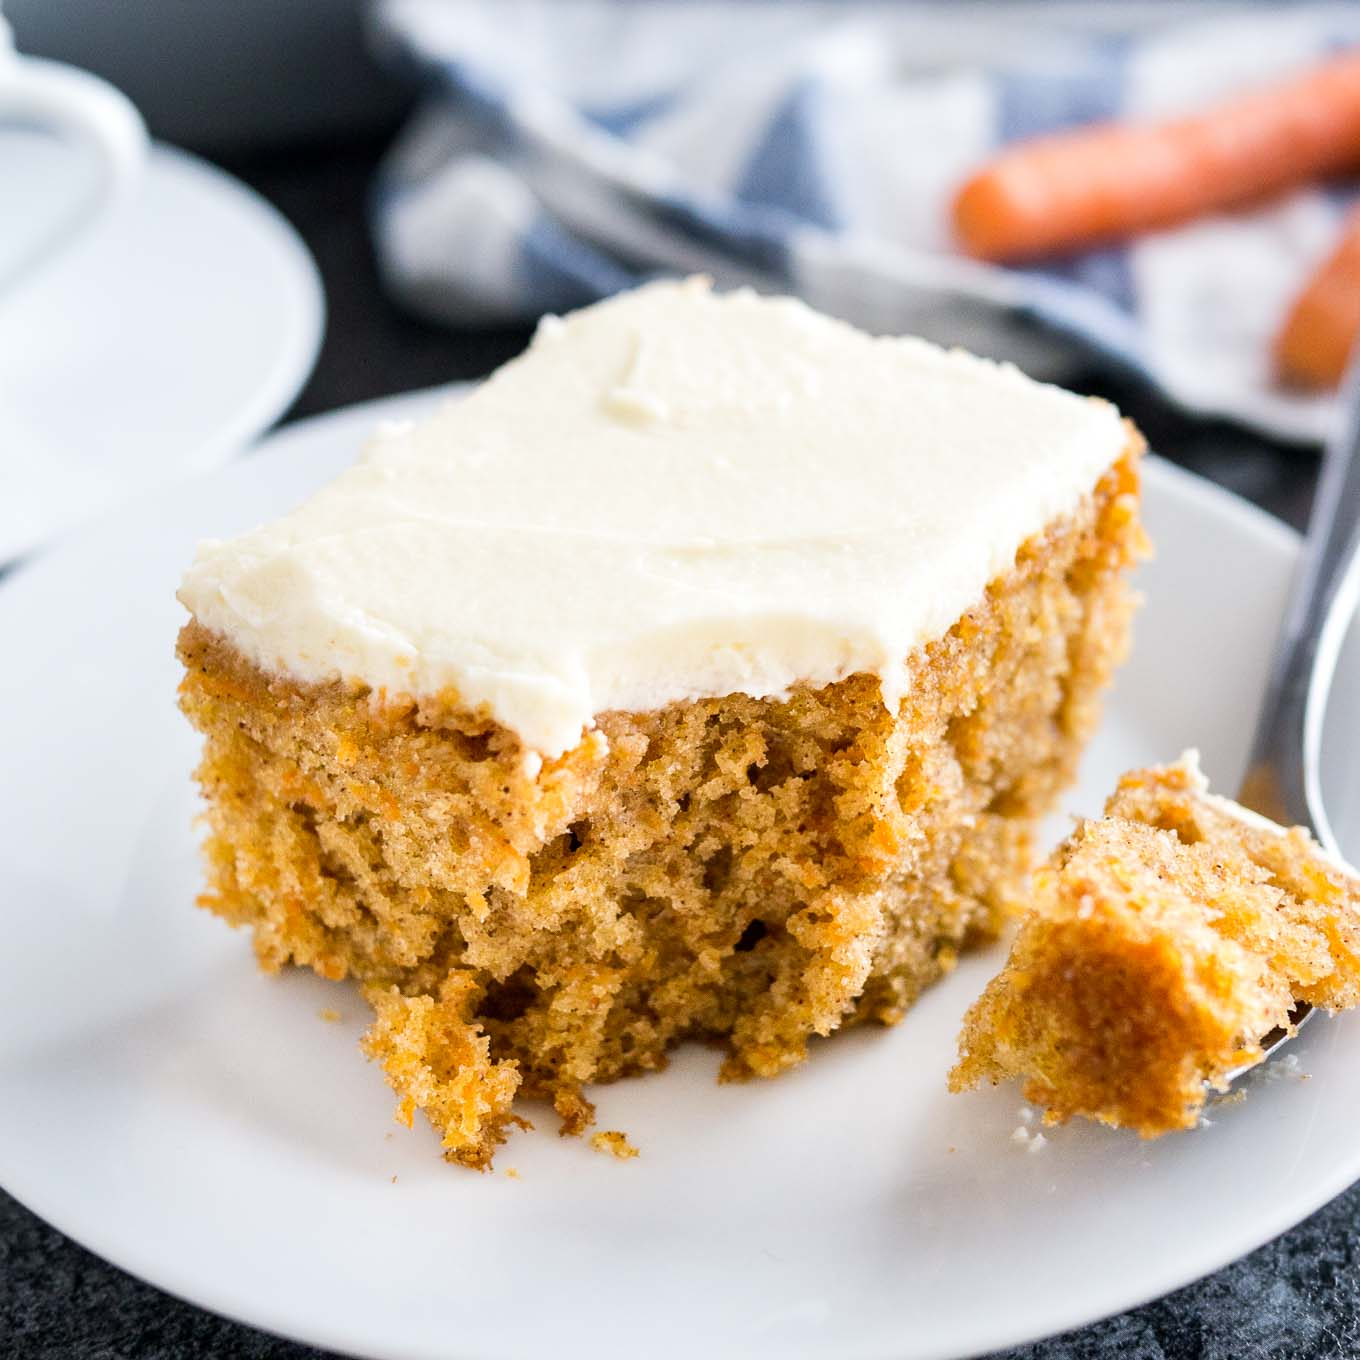 Carrot Cake For What Season